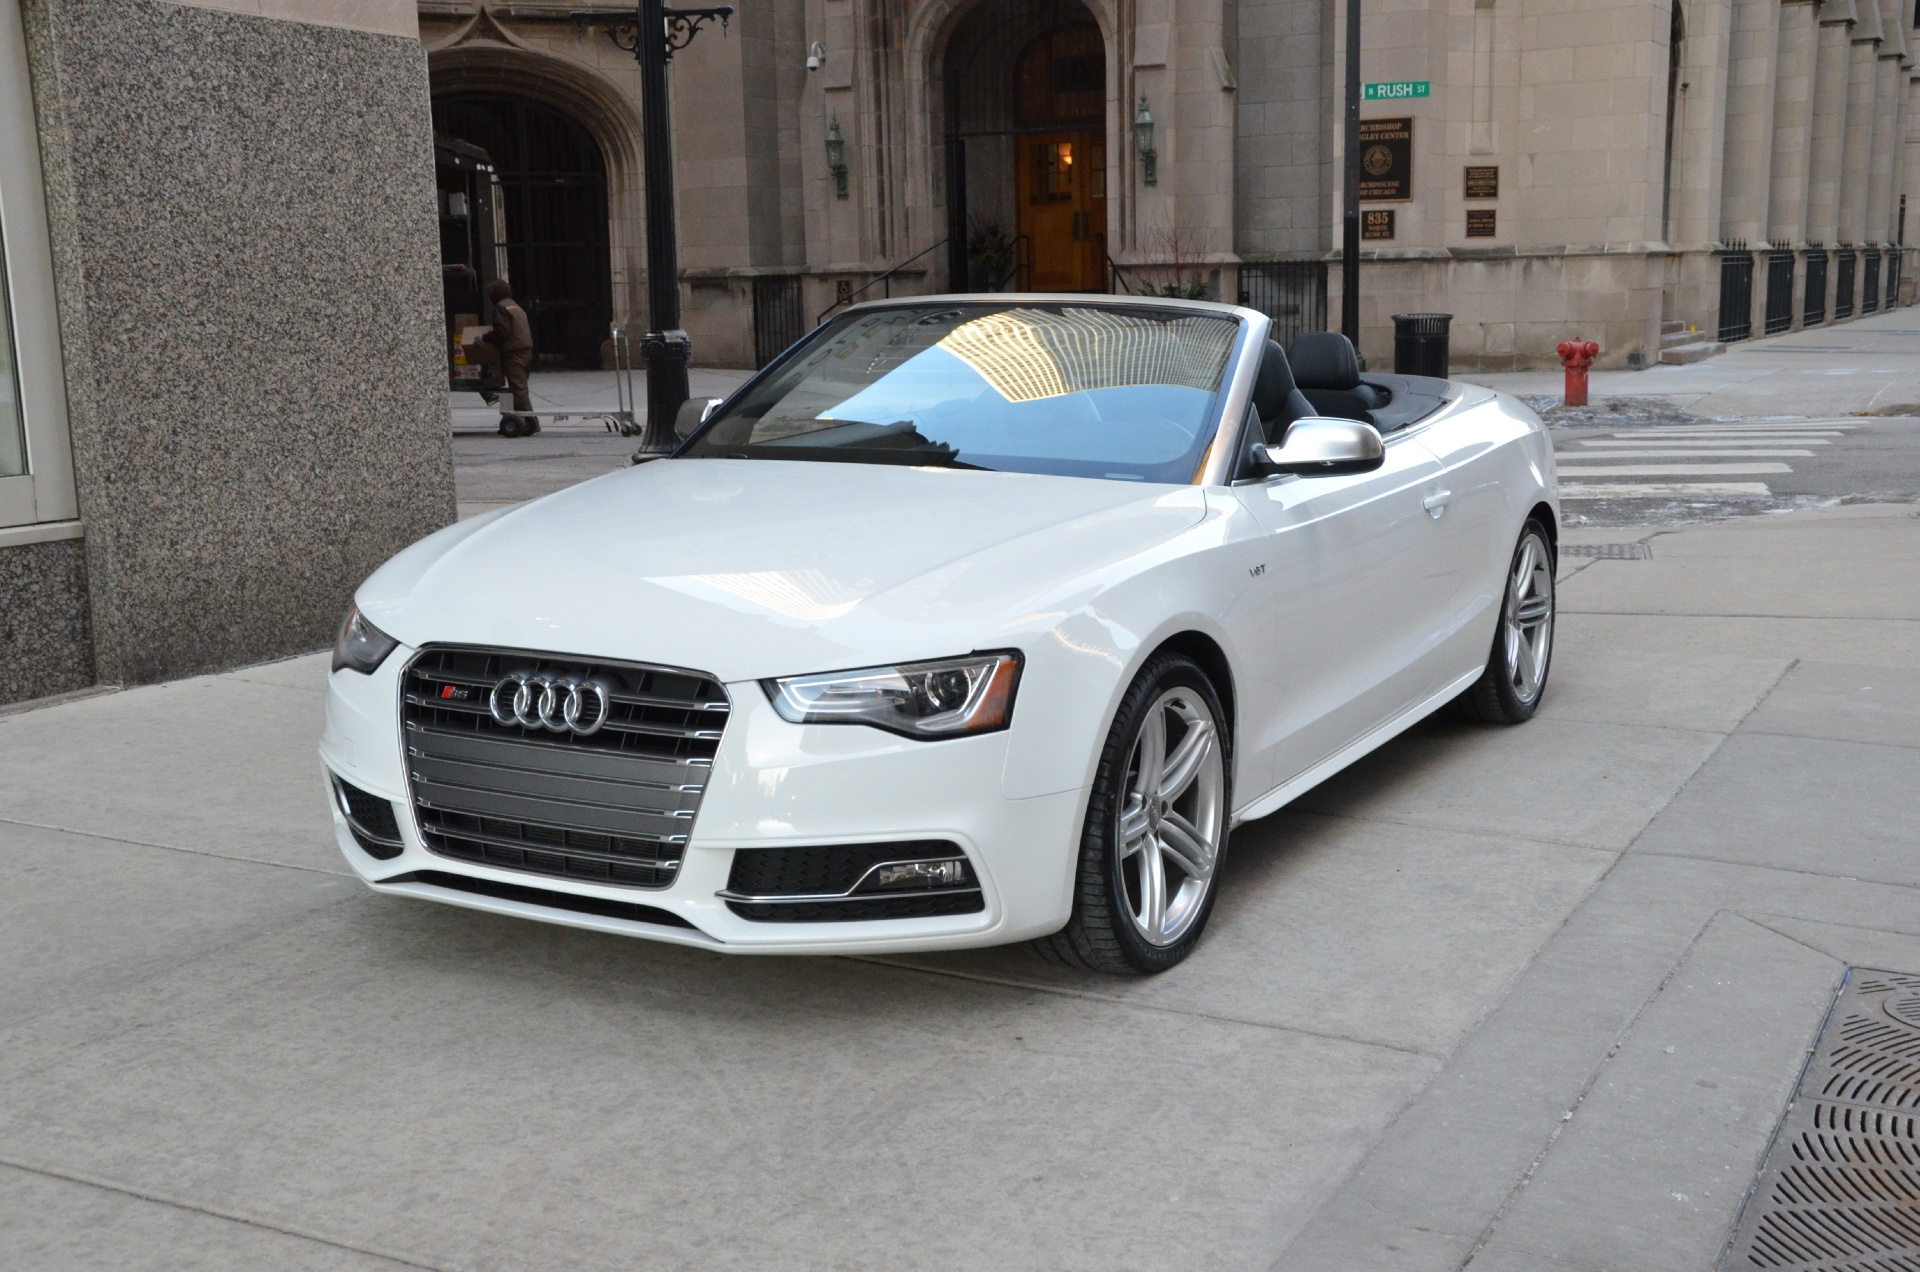 dublin jamesedition states quattro united oh on cars in audi sale for used prestige